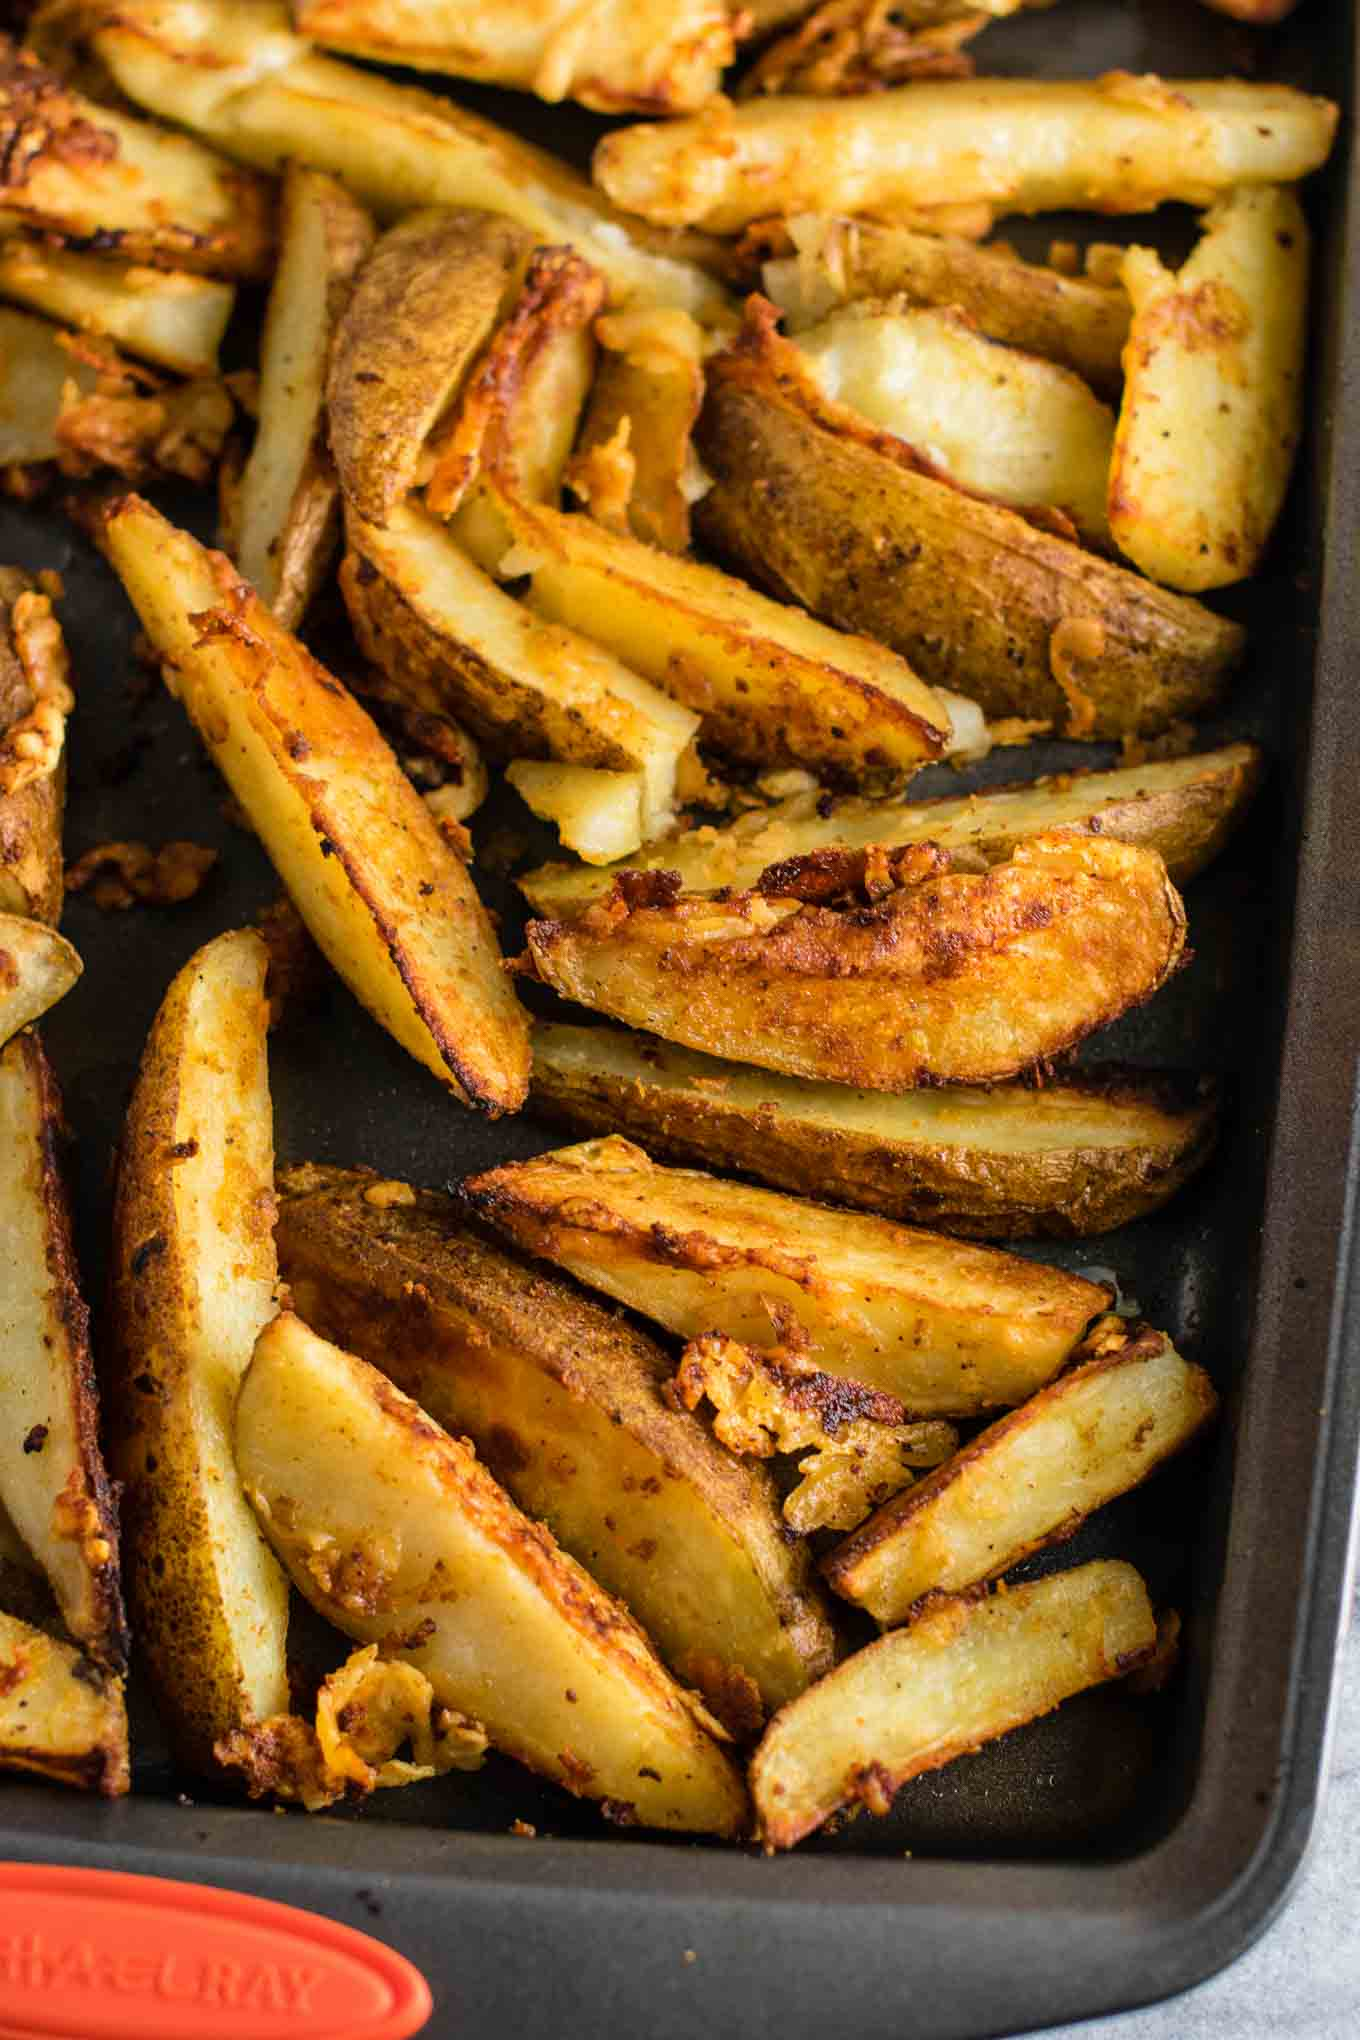 baked parmesan potato wedges - freshly grated parmesan gives these those amazing crispy edges. Perfect easy side dish! #garlicparmesan #potatowedges #sidedish #vegetarian #parmesan #dinner